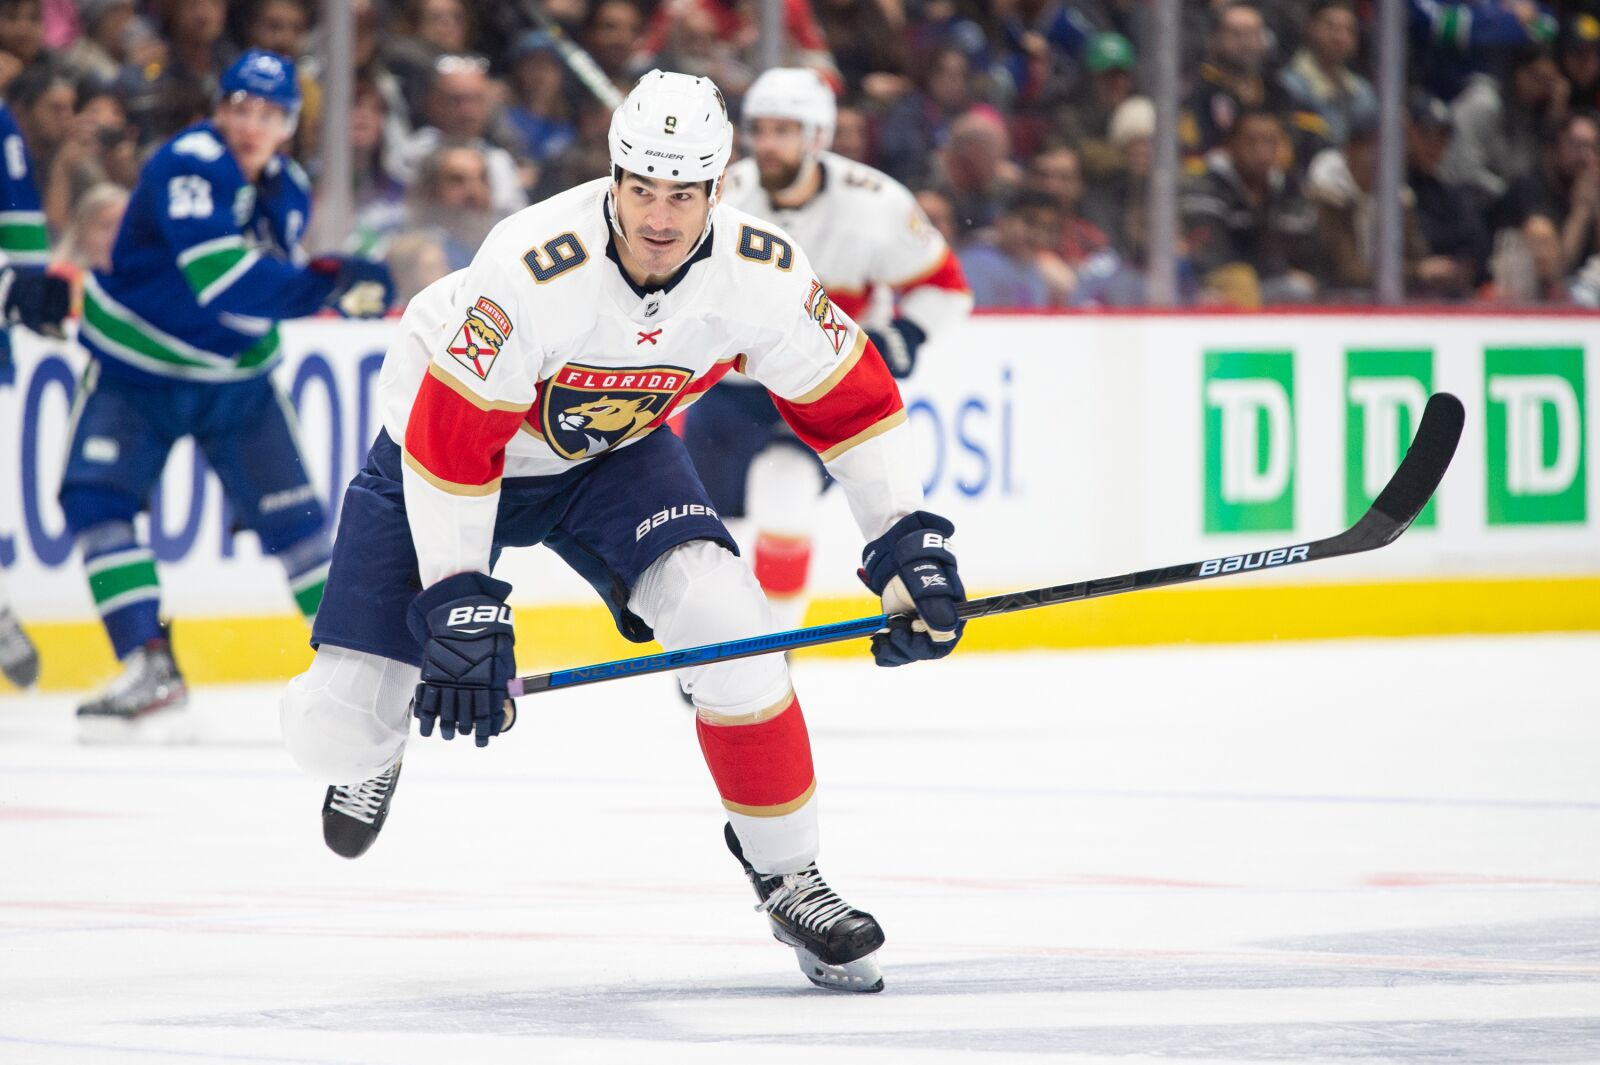 Florida Panthers: Brian Boyle is Fitting in Well with the Cats